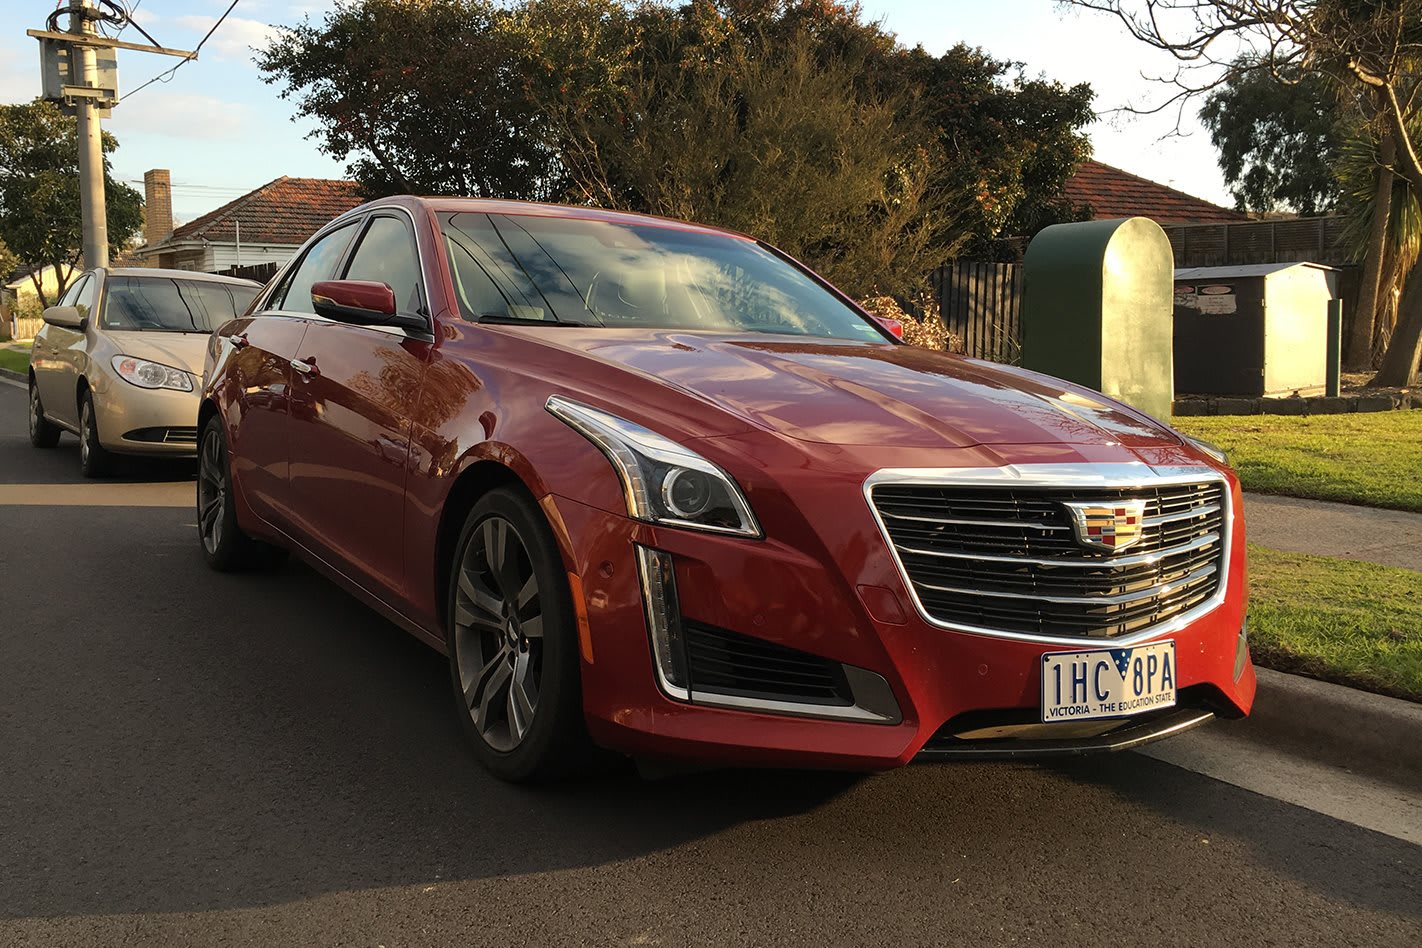 Cadillac CTS front side